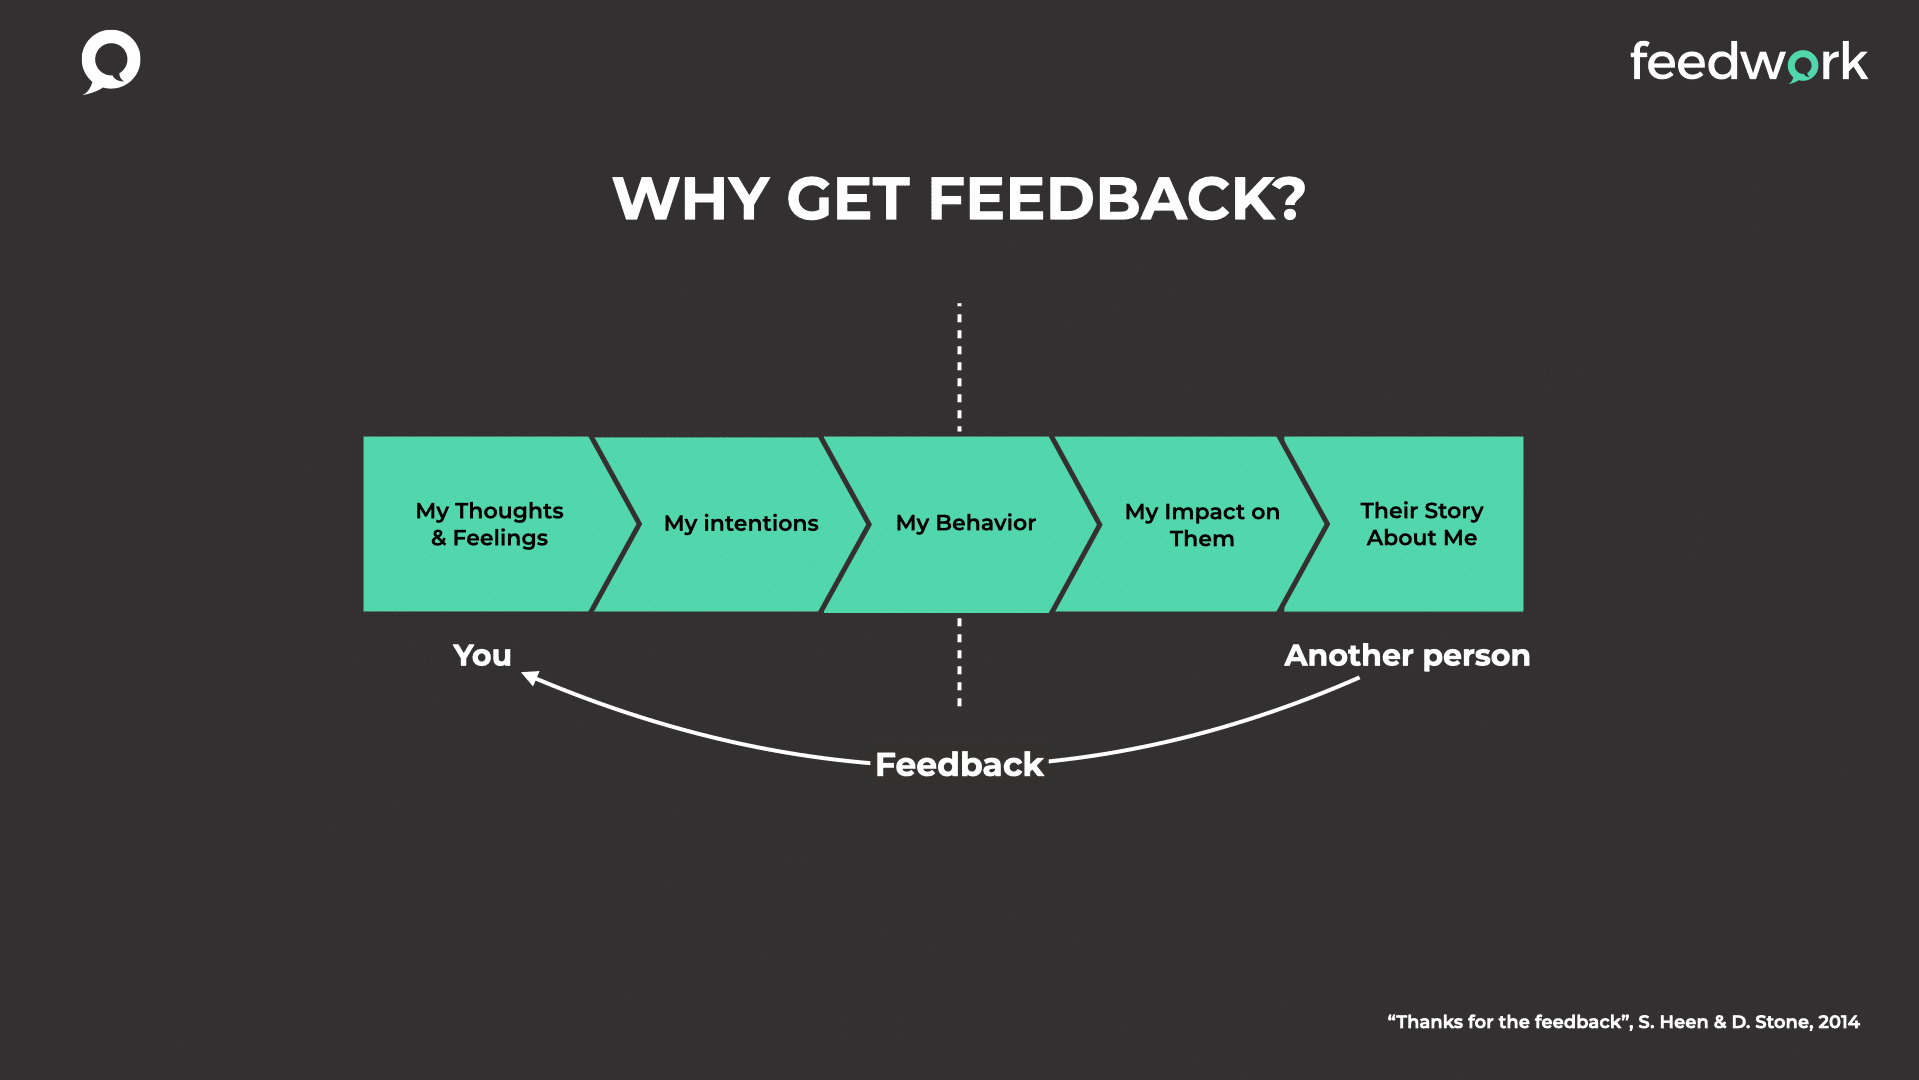 Feedback helps you to know how you impact other people.